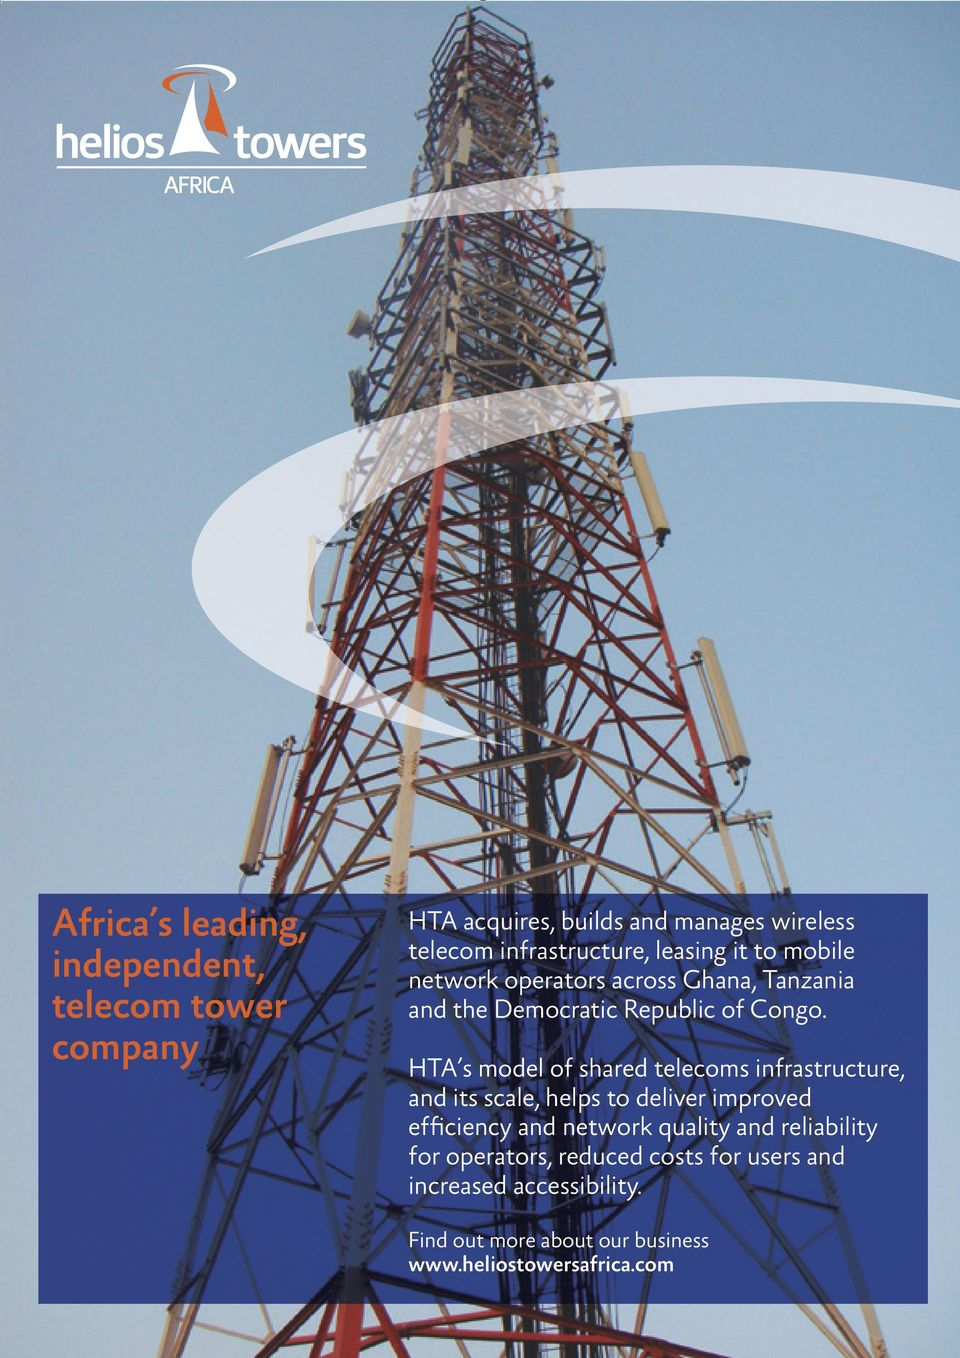 HTA s model of shared telecoms infrastructure, and its scale, helps to deliver improved efficiency and network quality